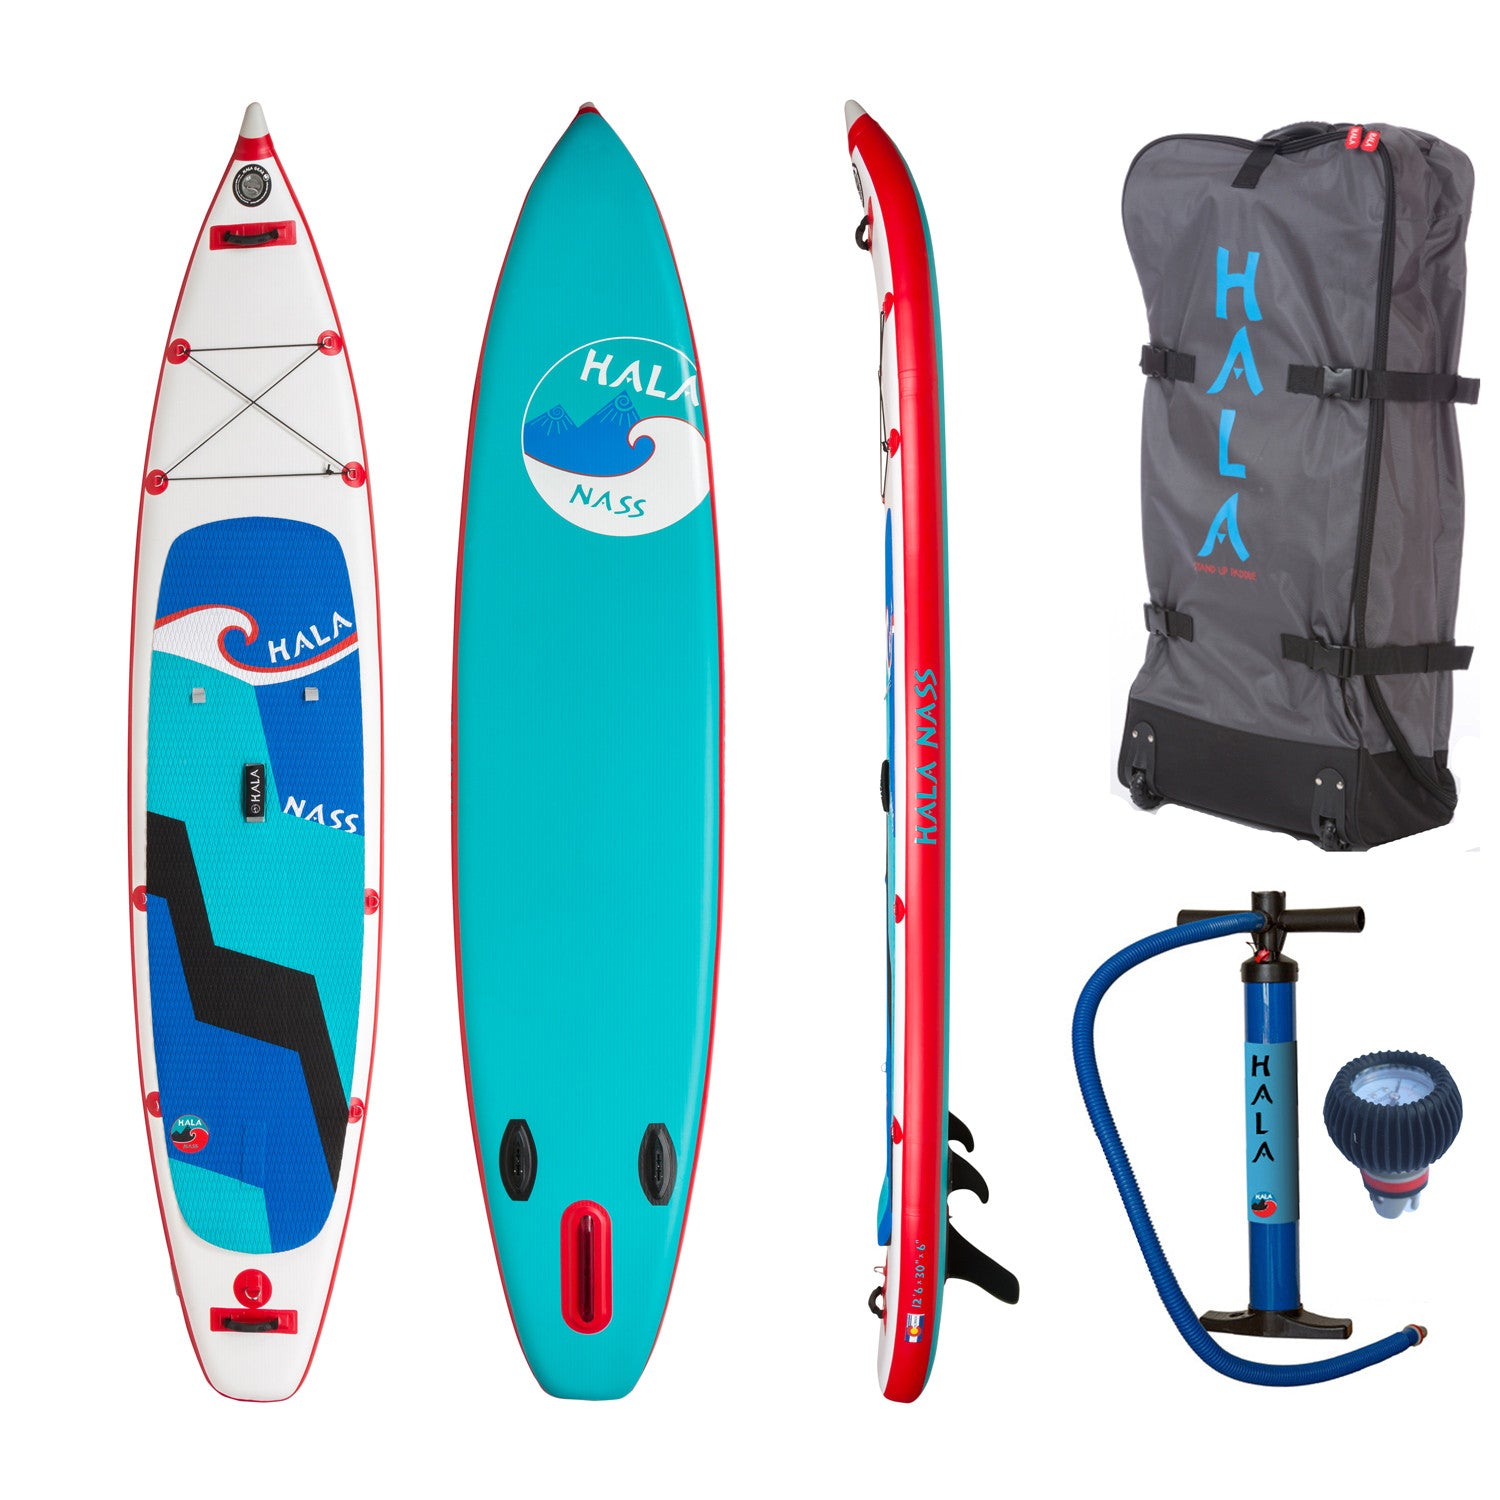 "Hala Nass 12'6""x30"" Inflatable Stand Up Paddle Board"